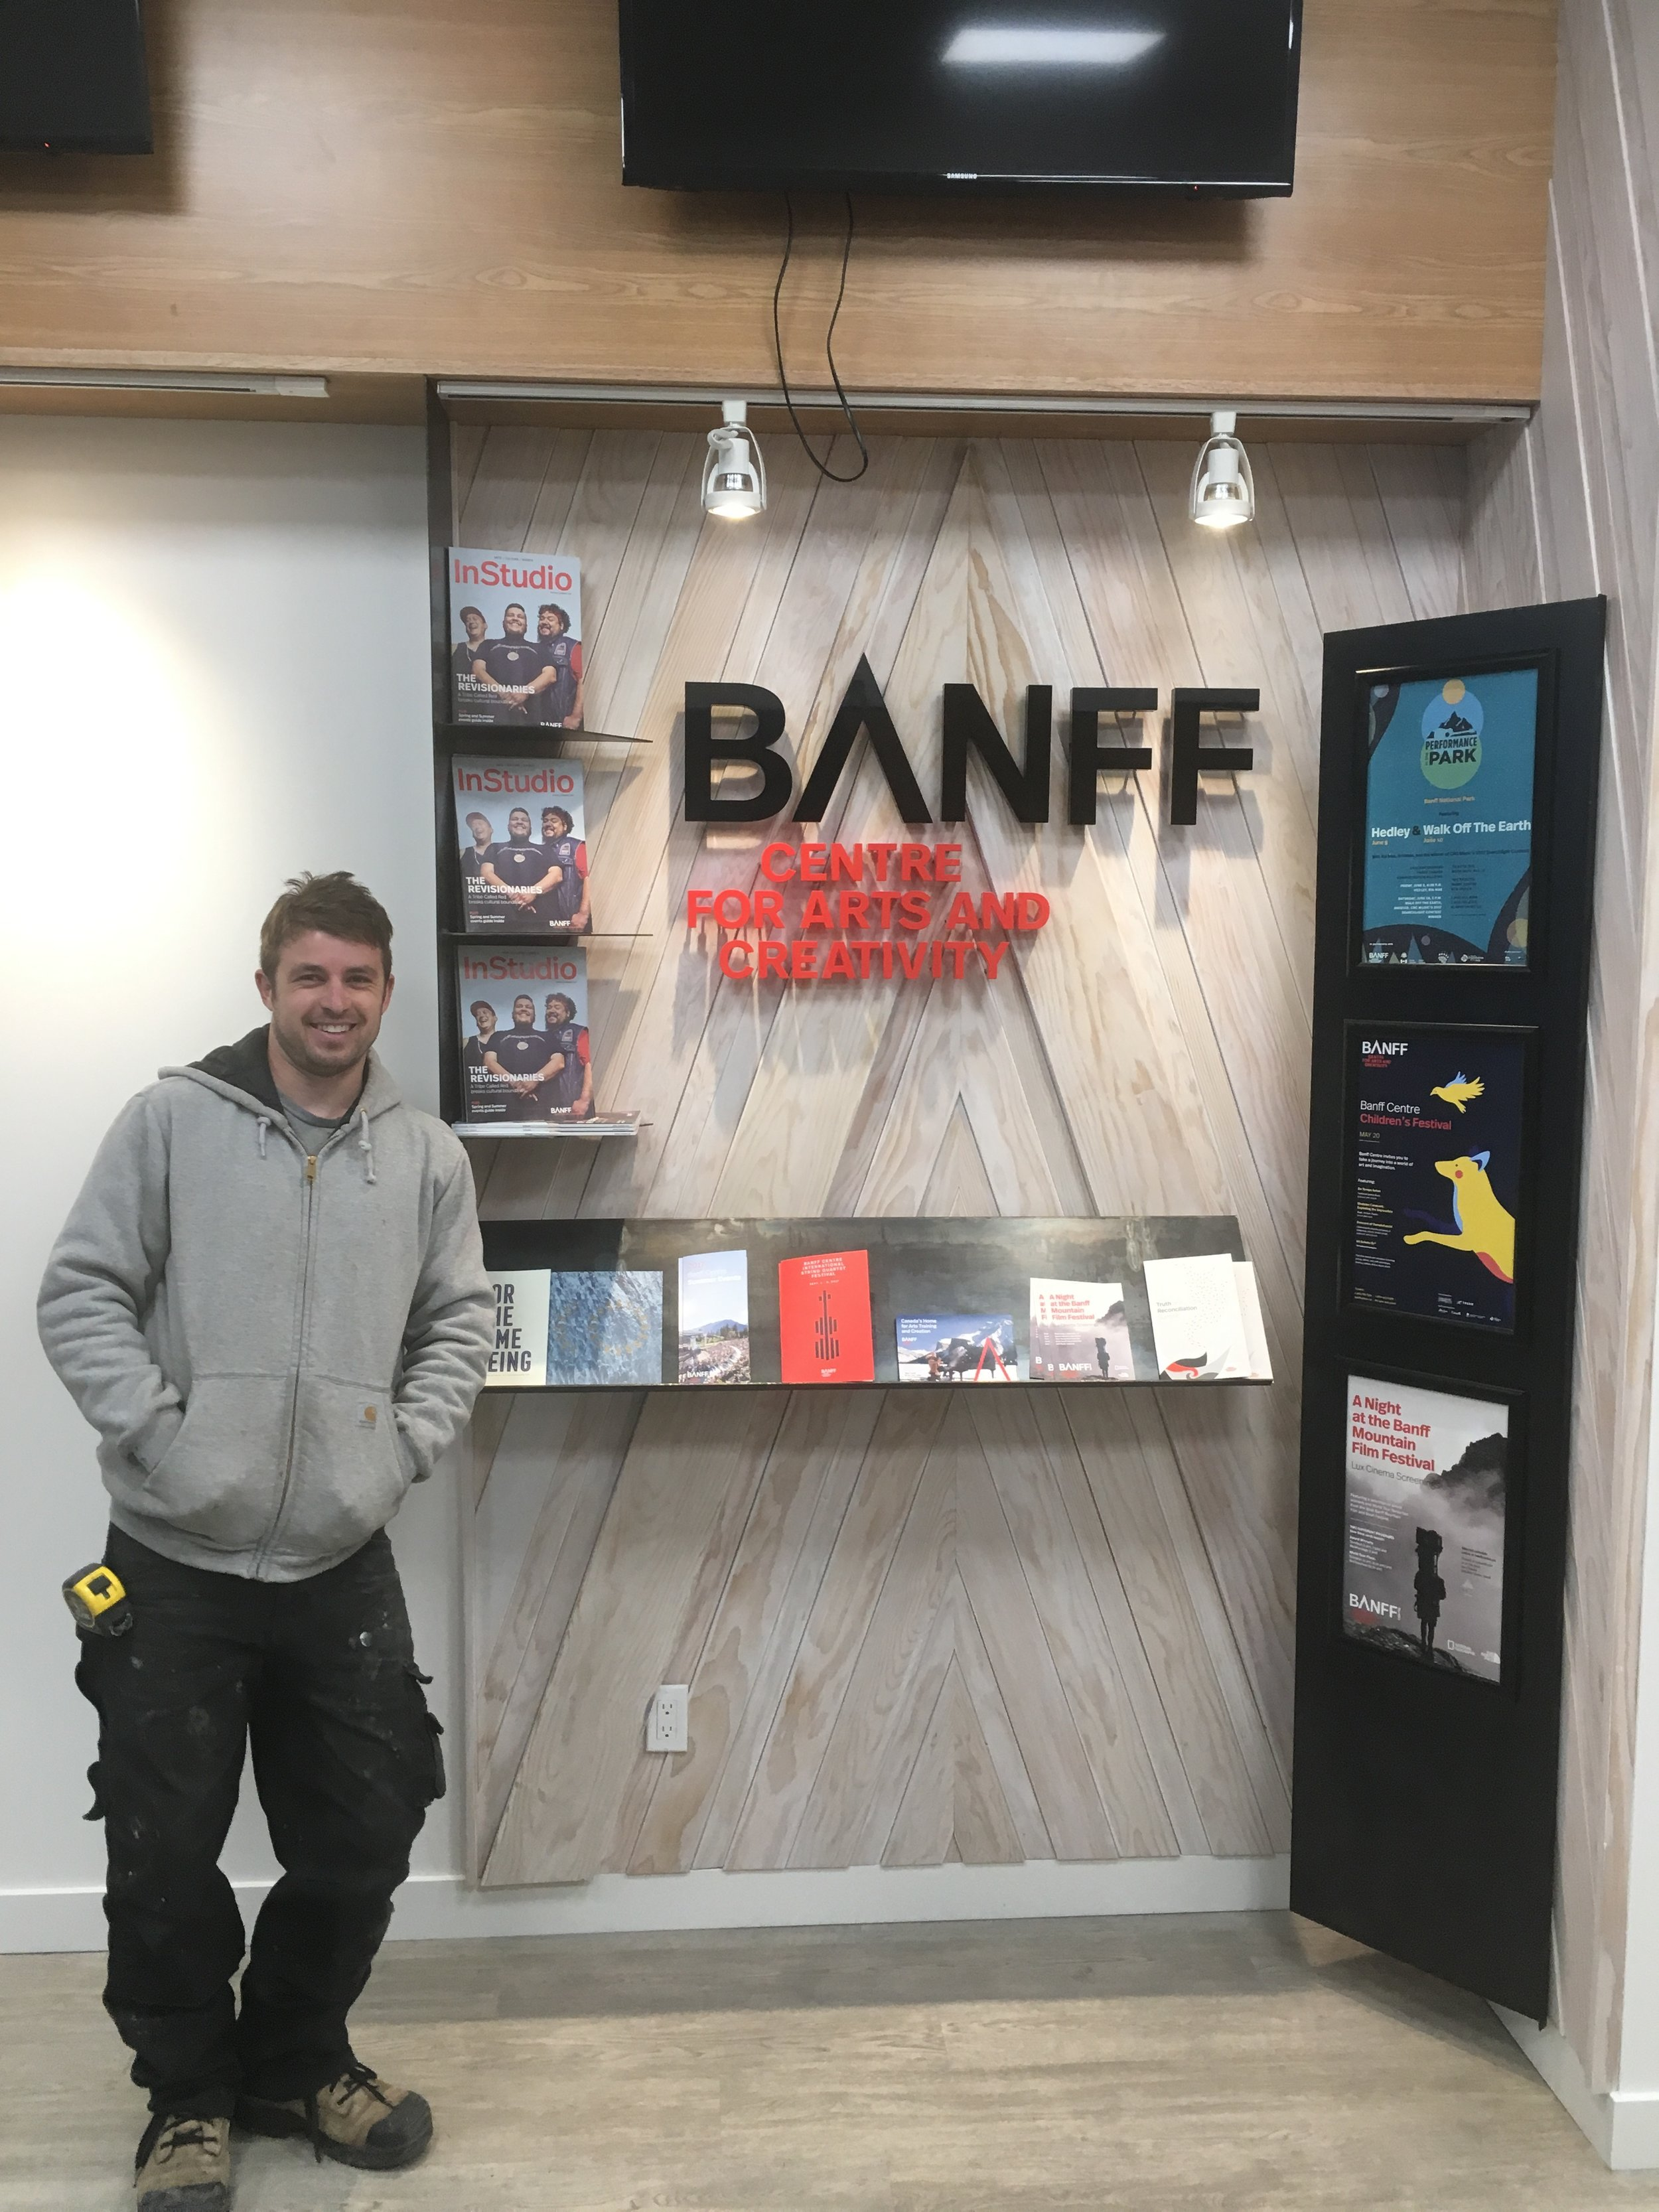 Banff Centre DBT Store Display - May 2017